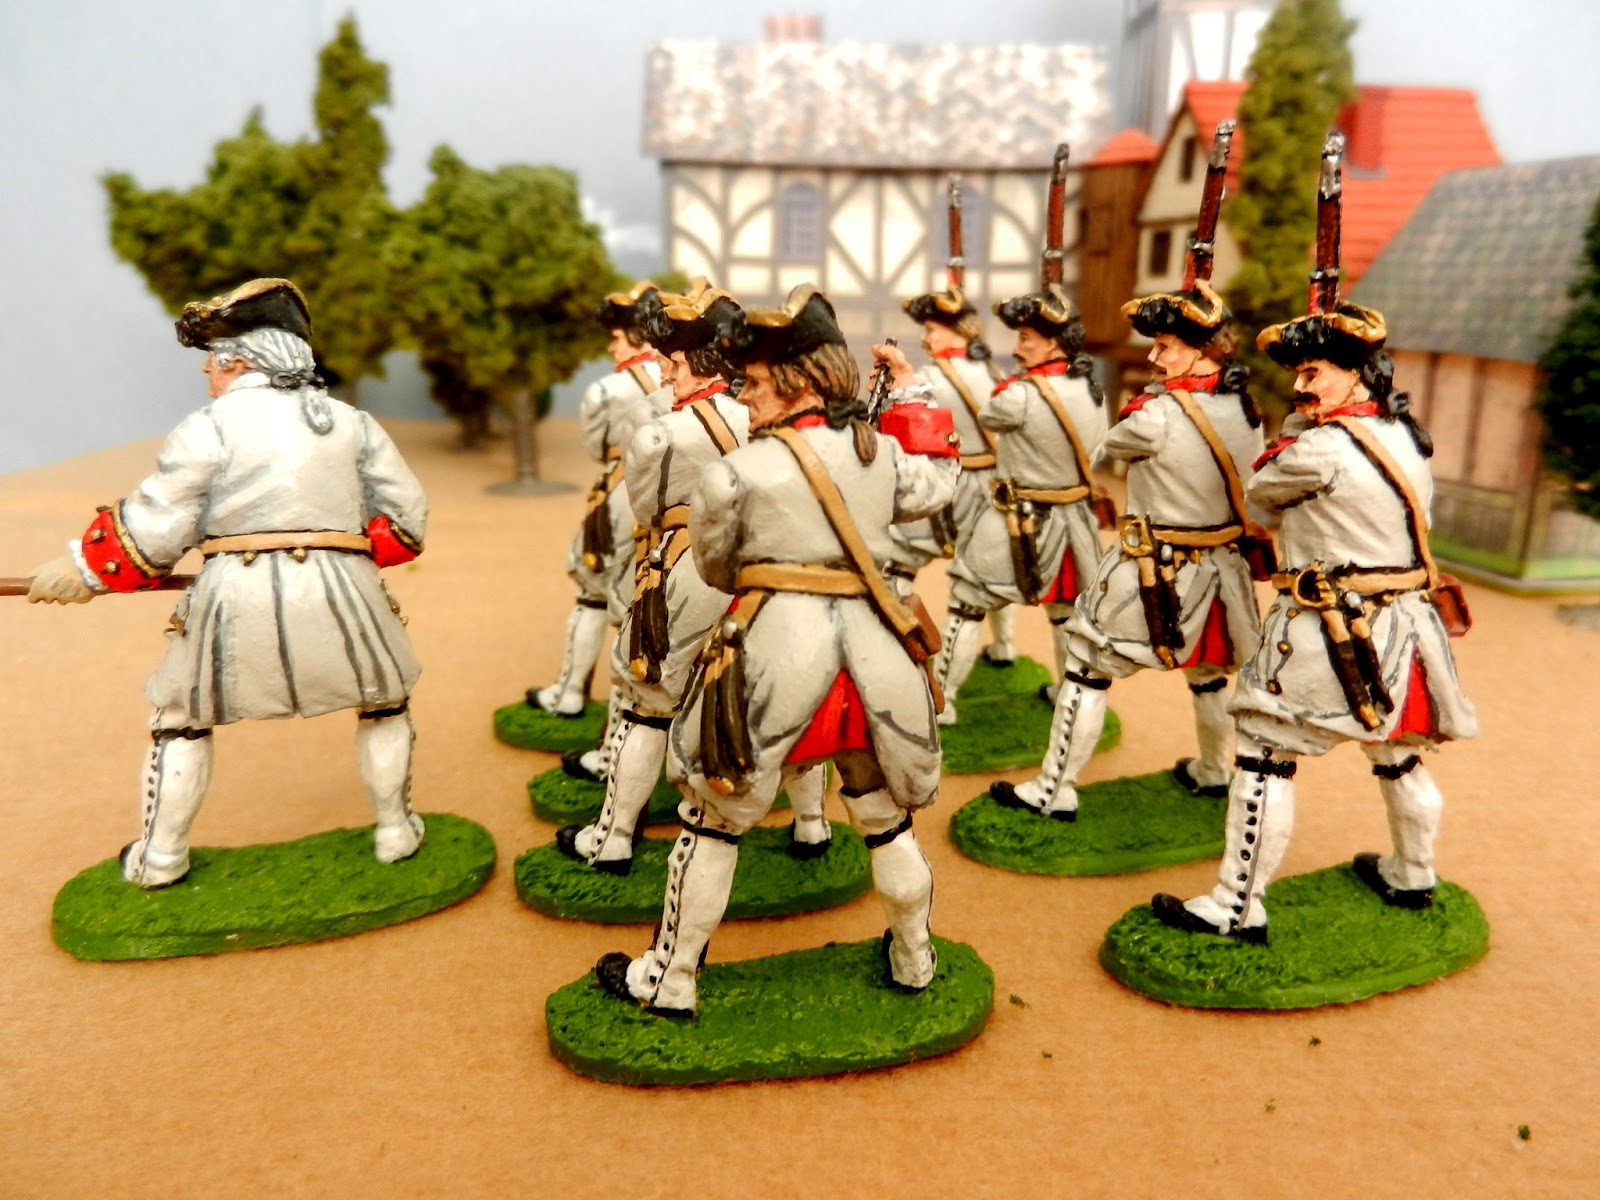 Painting Soft Plastic   Soldiers With Acrylics